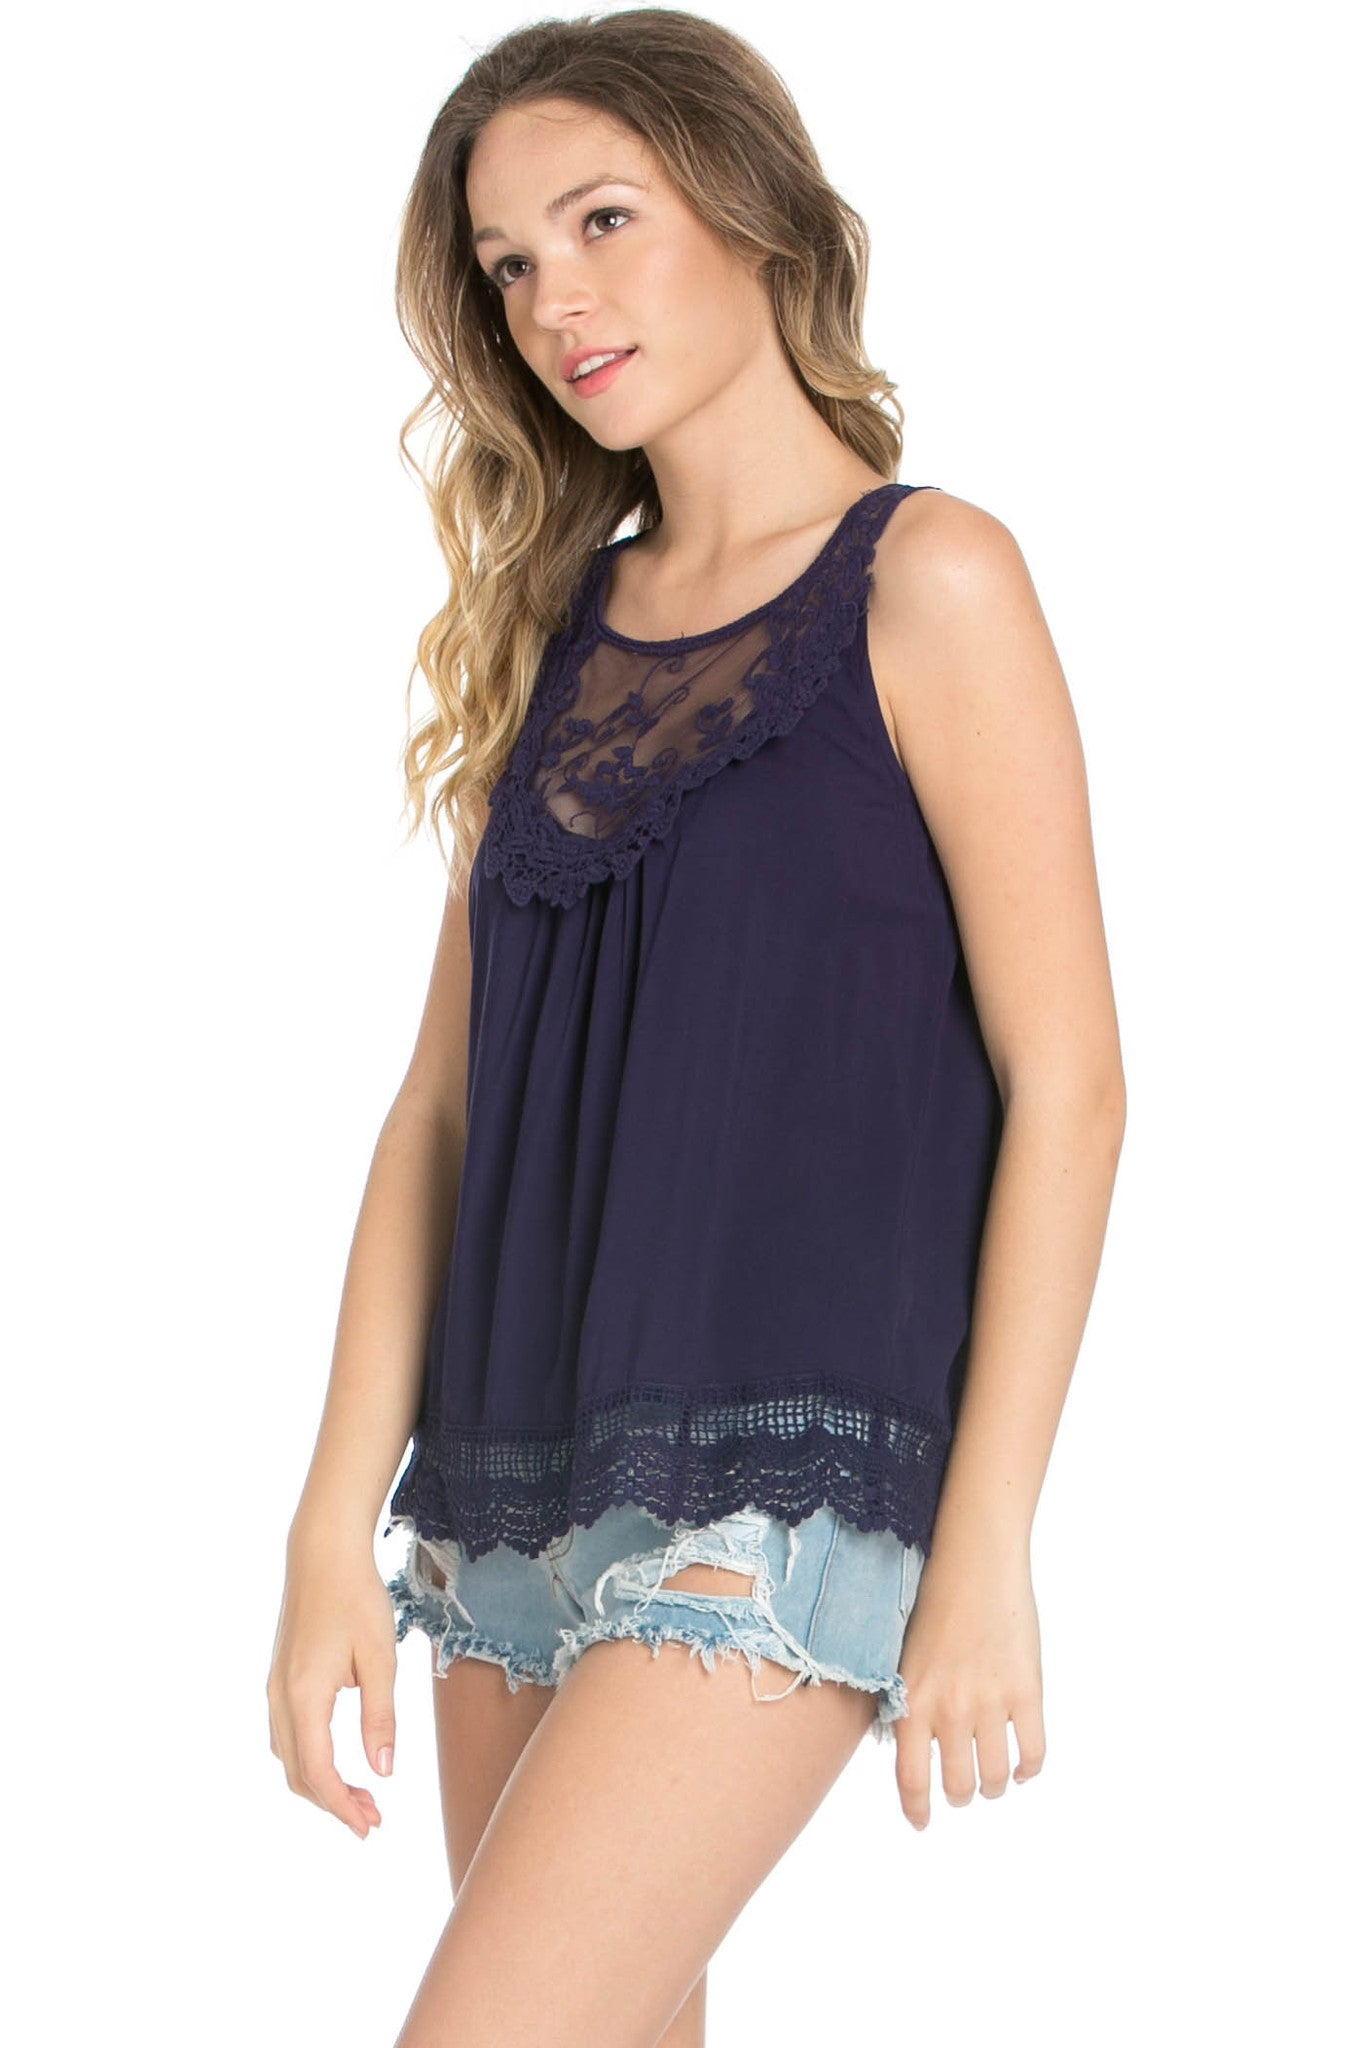 Crochets and Lace Navy Top - Tops - My Yuccie - 2